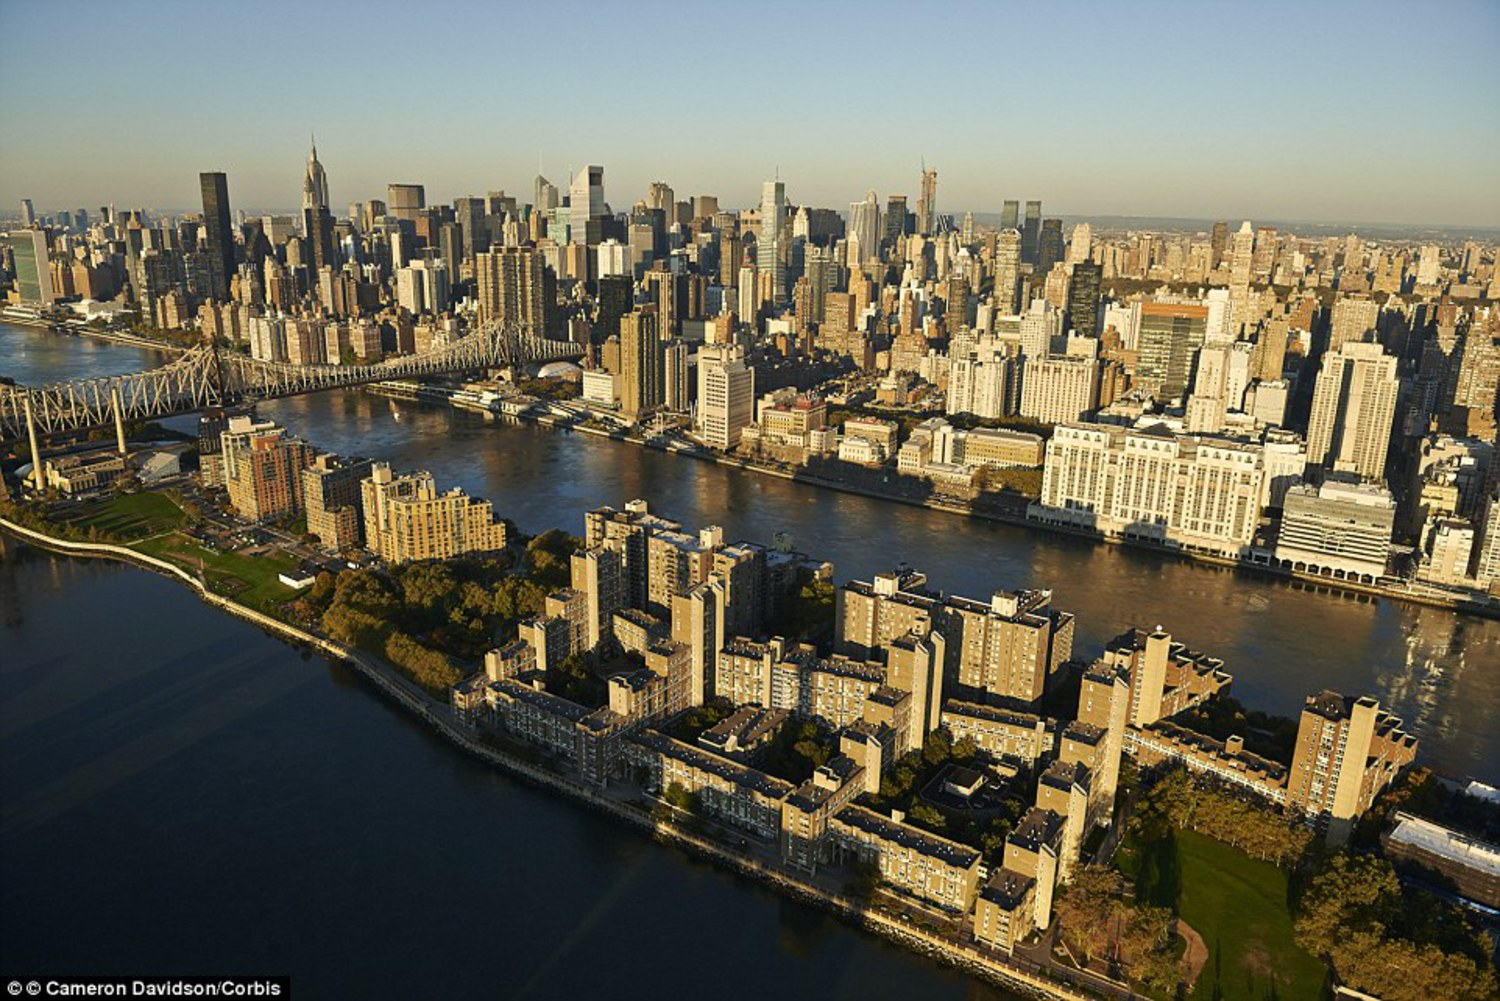 Today, Roosevelt's Island is home to 14,000 people - many of them workers at the United Nations which is just a short tram or Subway trip across the river.